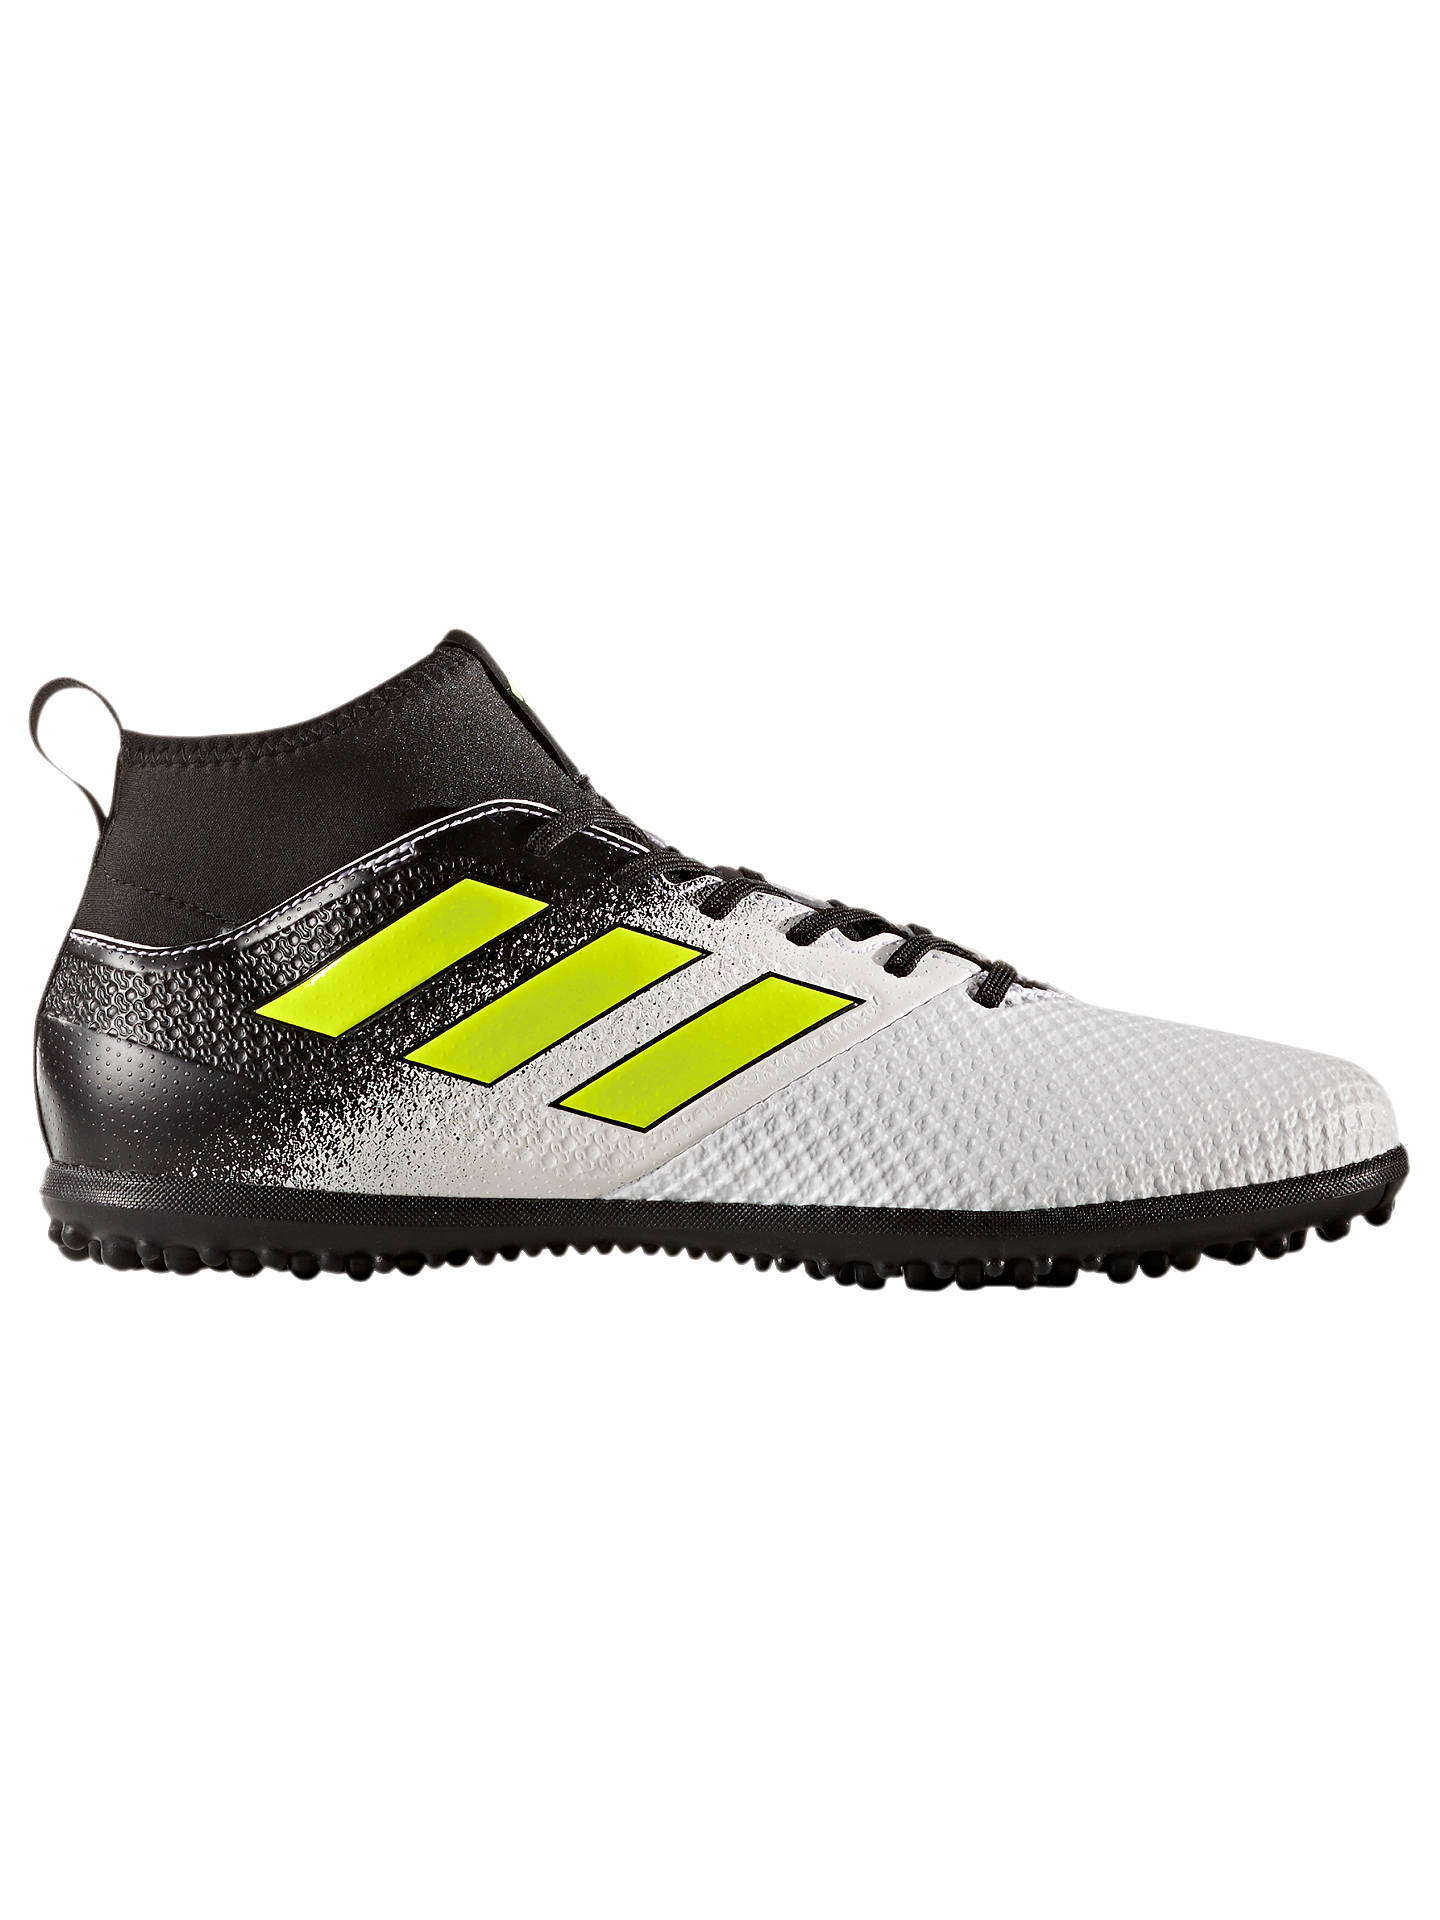 sports shoes 26d73 17424 Buyadidas Ace Tango 17.3 Primemesh AG Mens Turf Football Boots,  WhiteBlackYellow ...